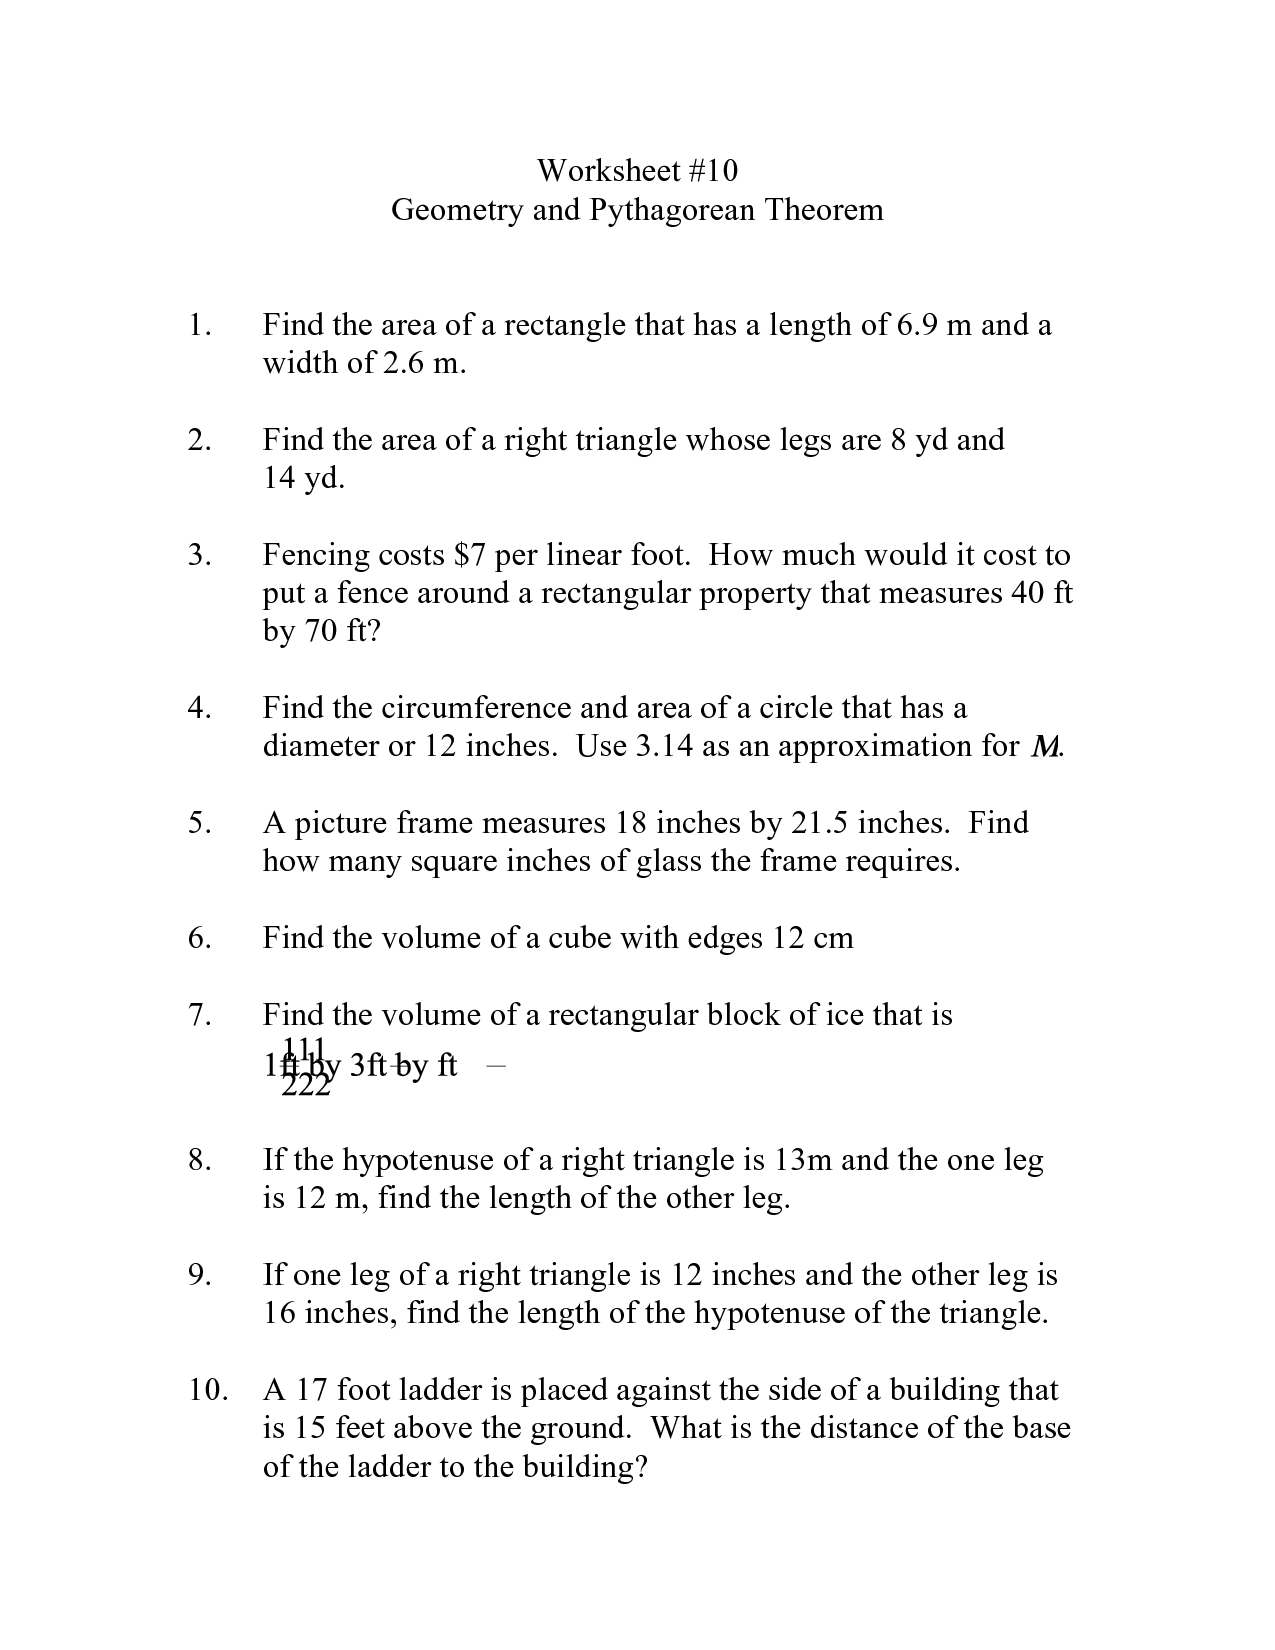 Worksheet On Pythagorean Theorem Printables